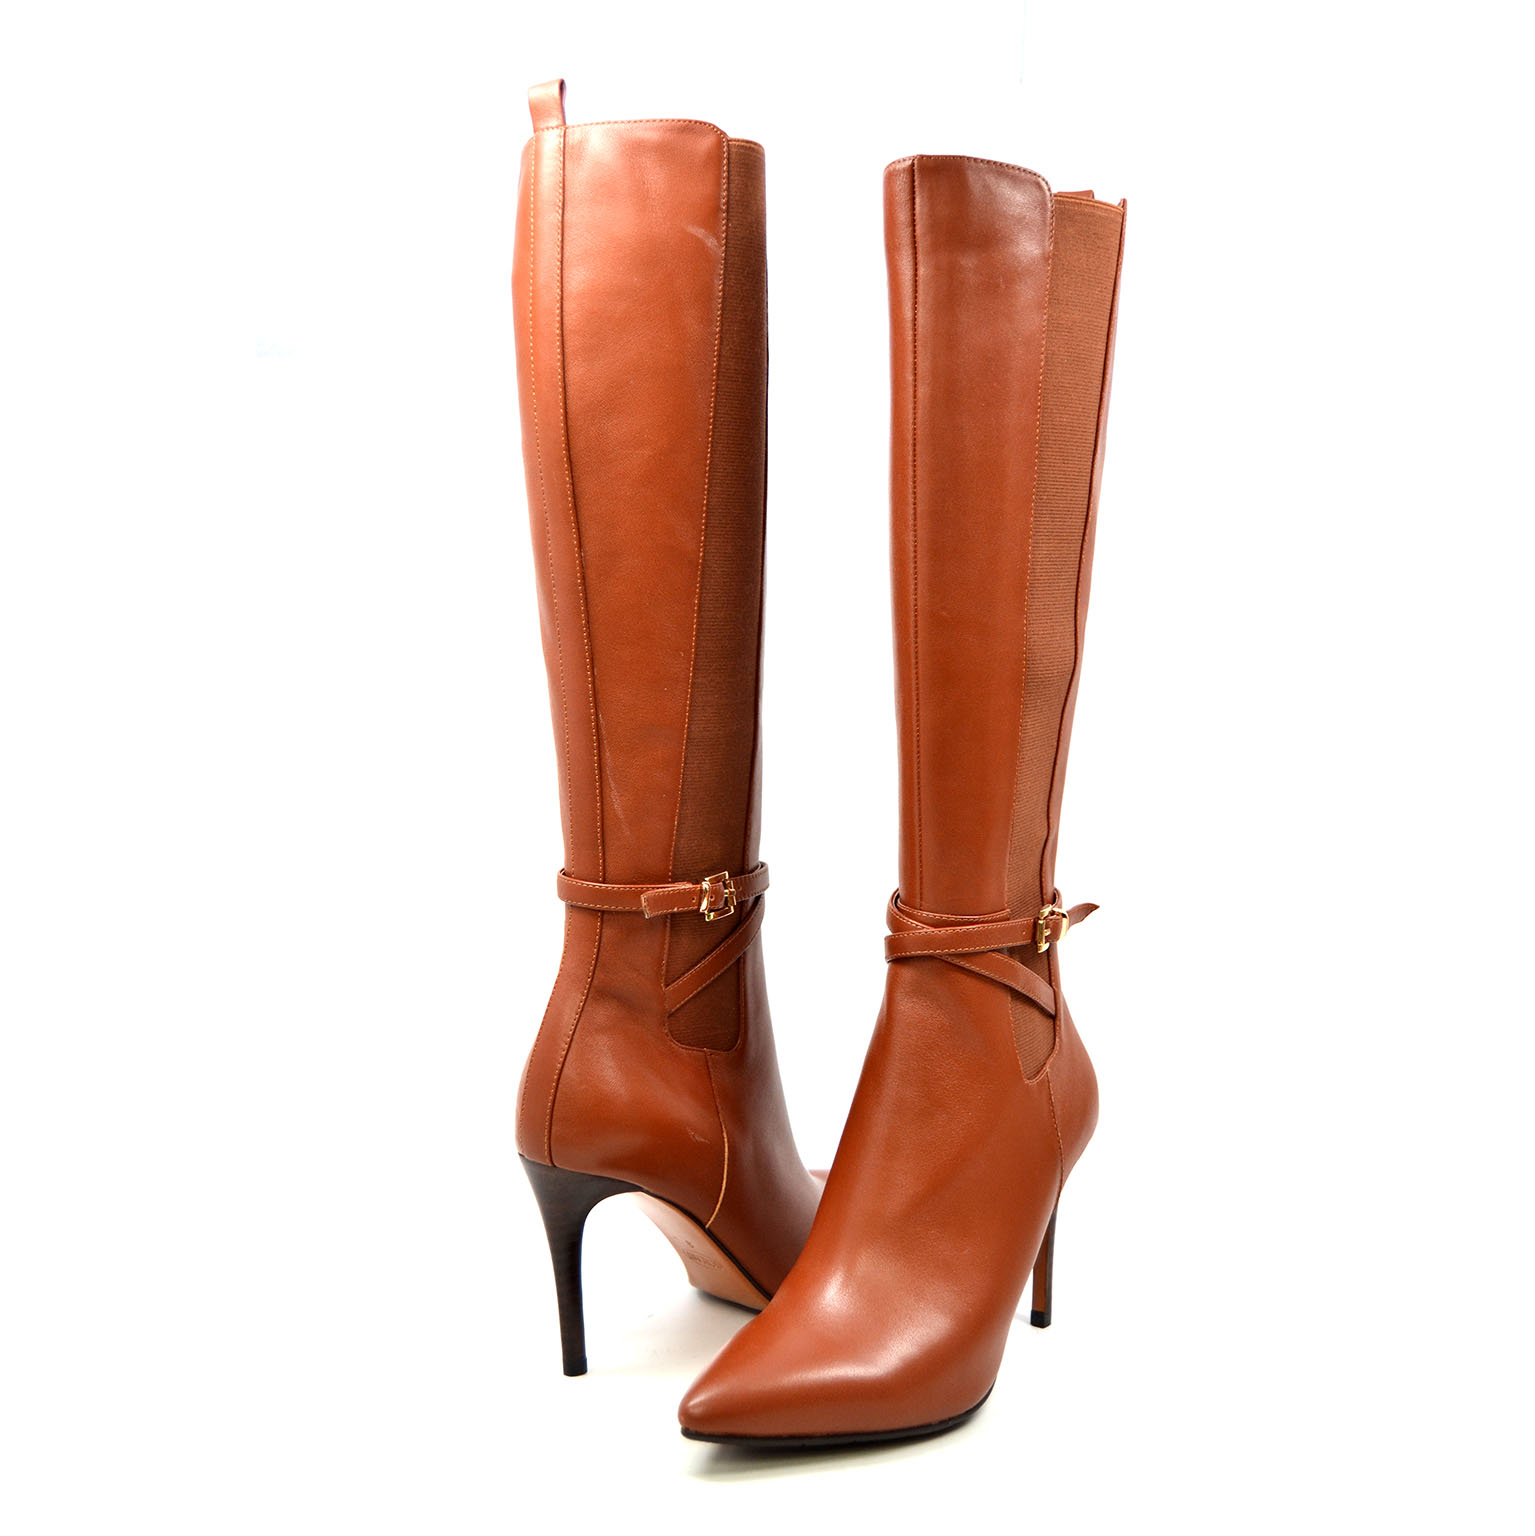 SoleMani Women's Noosh Cognac Leather Narrow calf